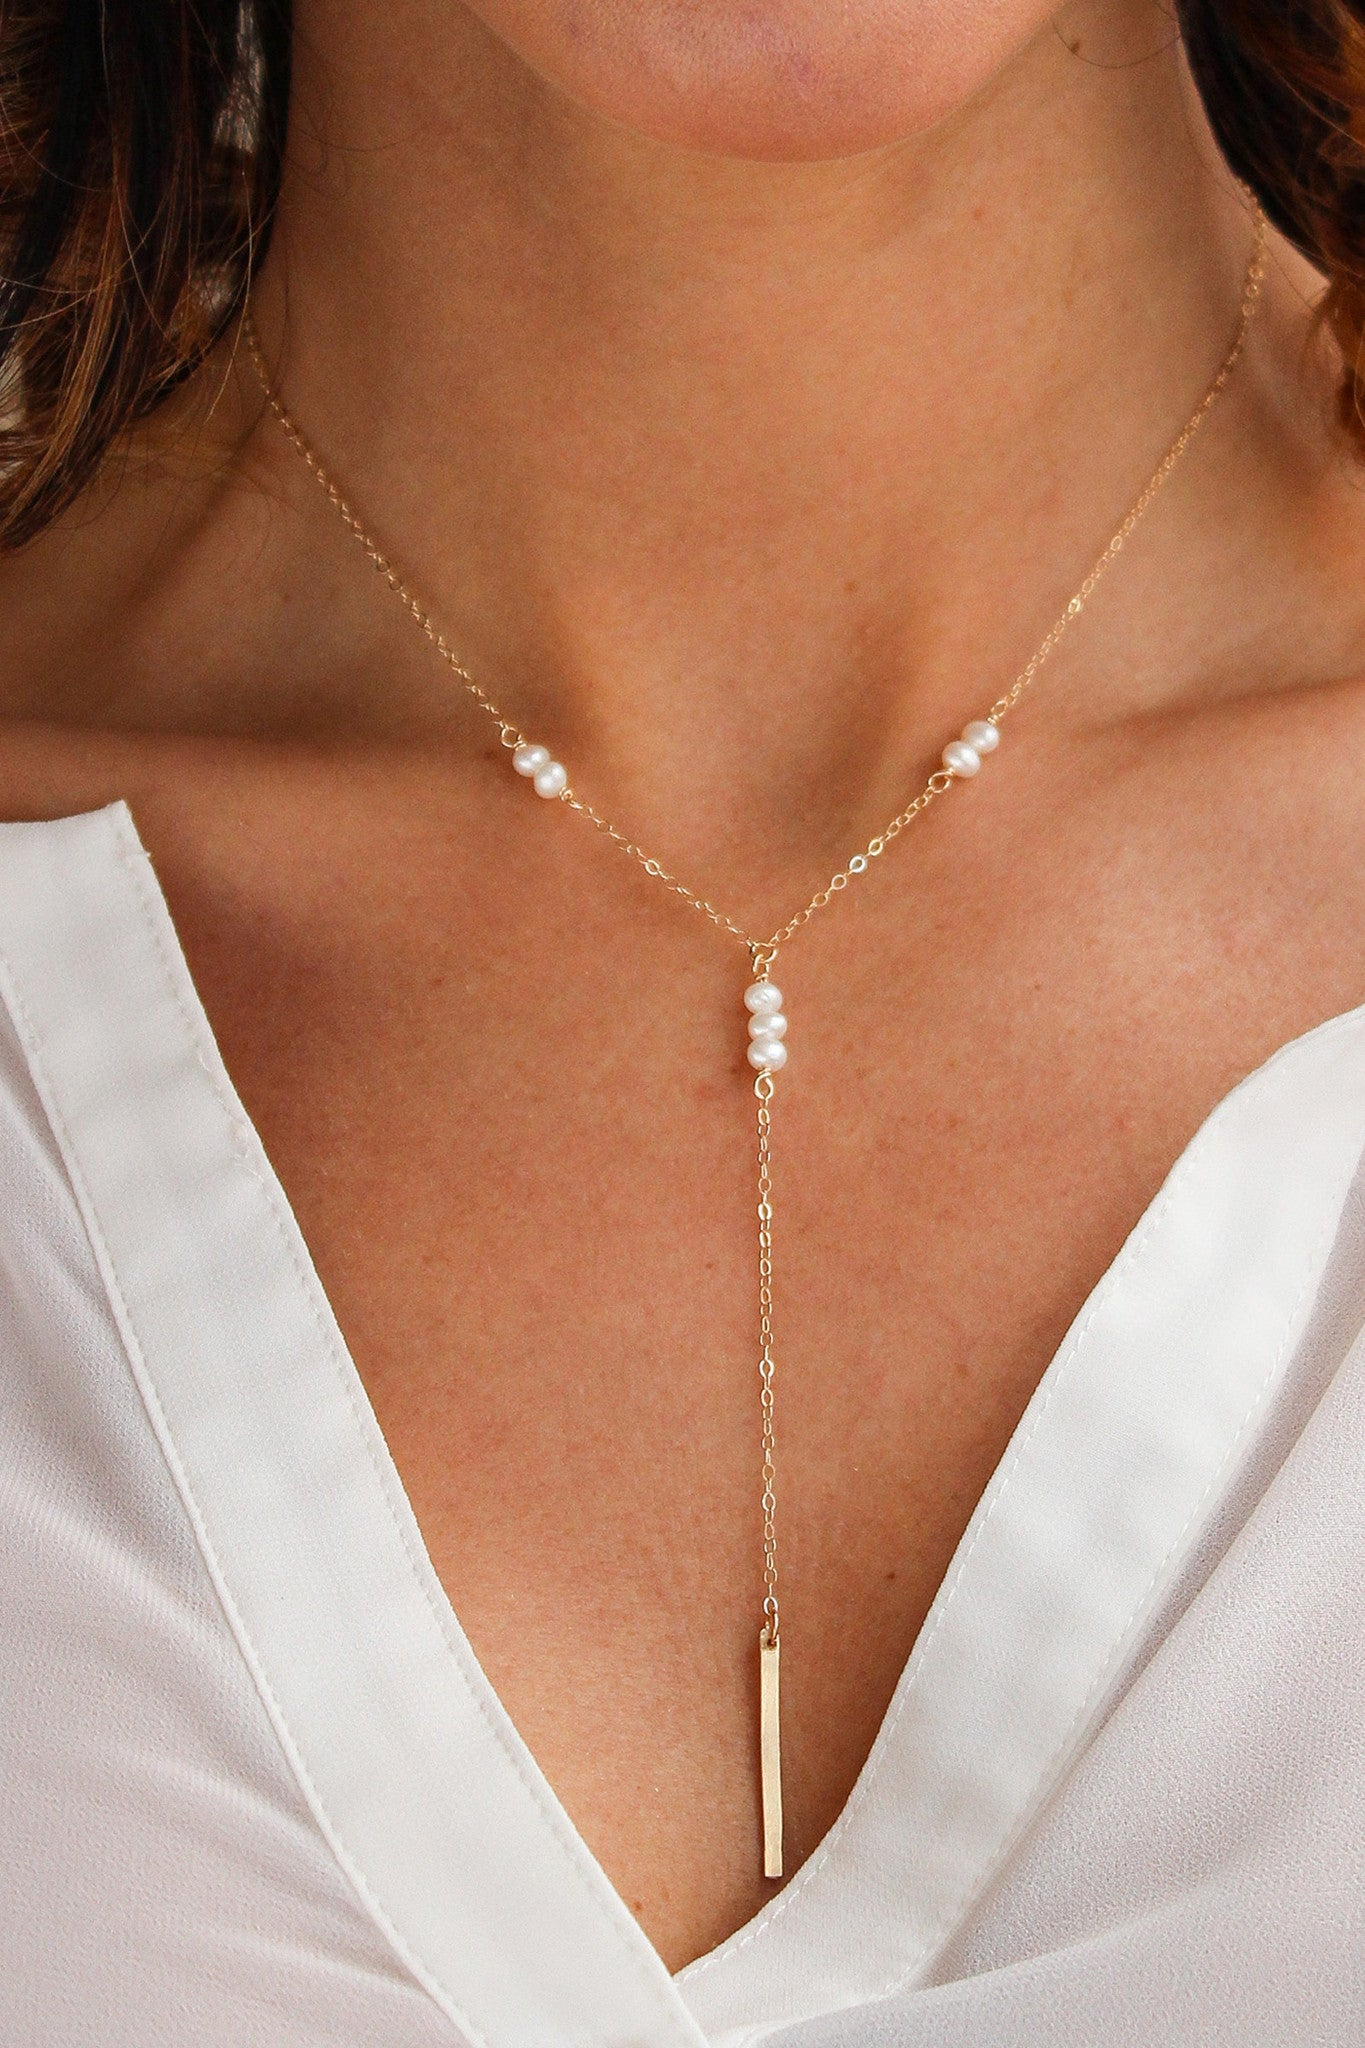 Galactic Pearl Y Necklace - Christine Elizabeth Jewelry - Glamour and Glow